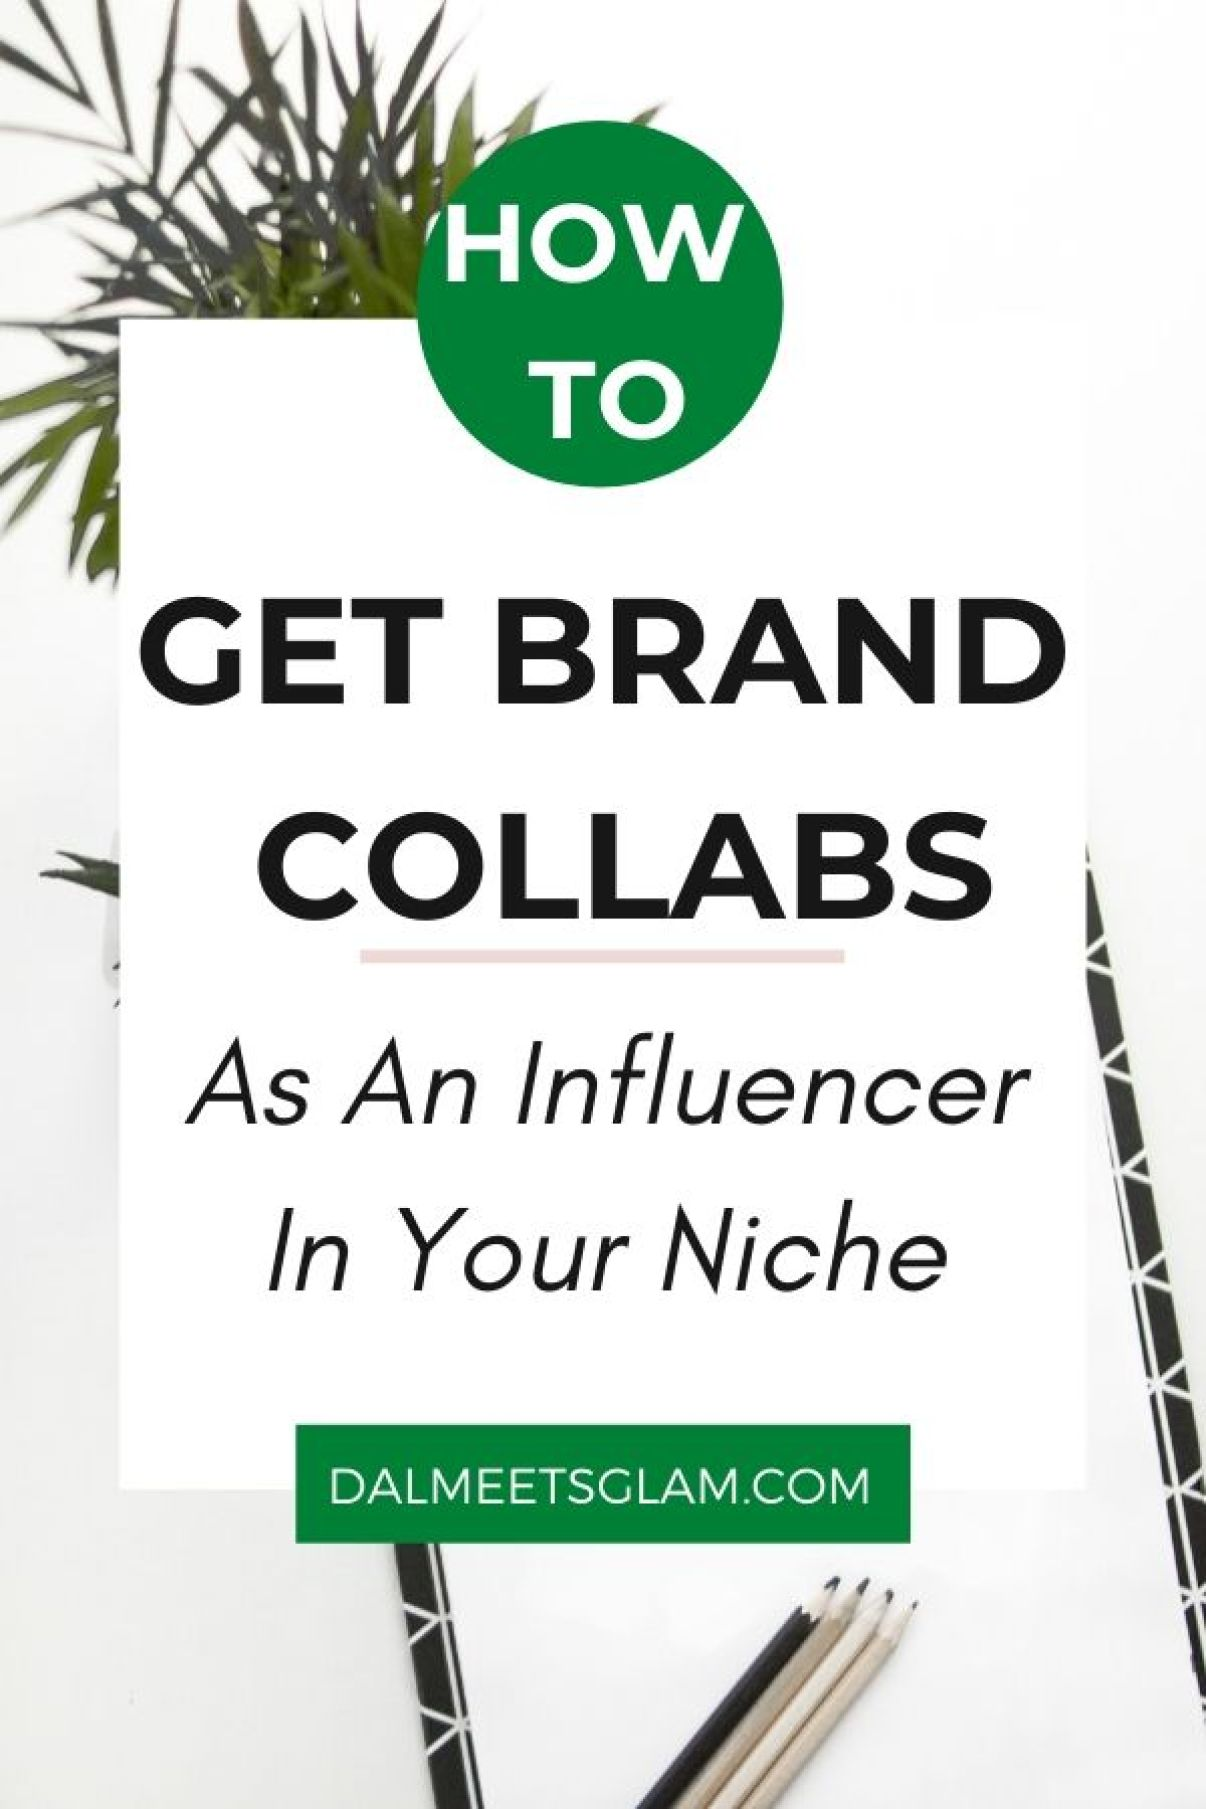 How To Get Brand Collaborations As An Influencer In Your Niche